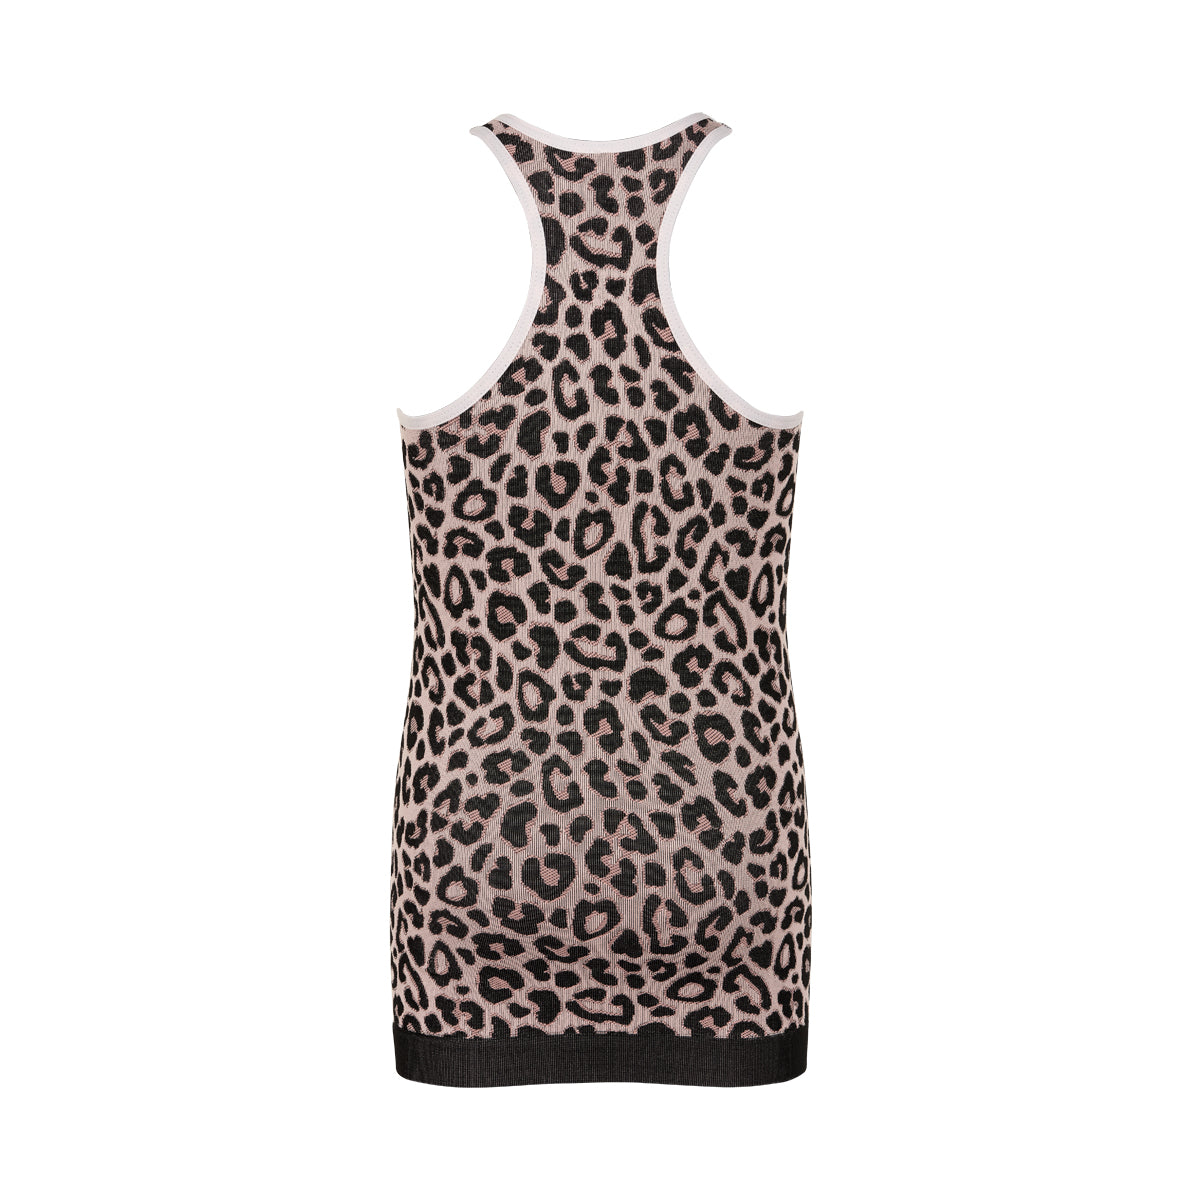 PURE Cheetah tank top-THE NEW PURE-THE NEW PURE